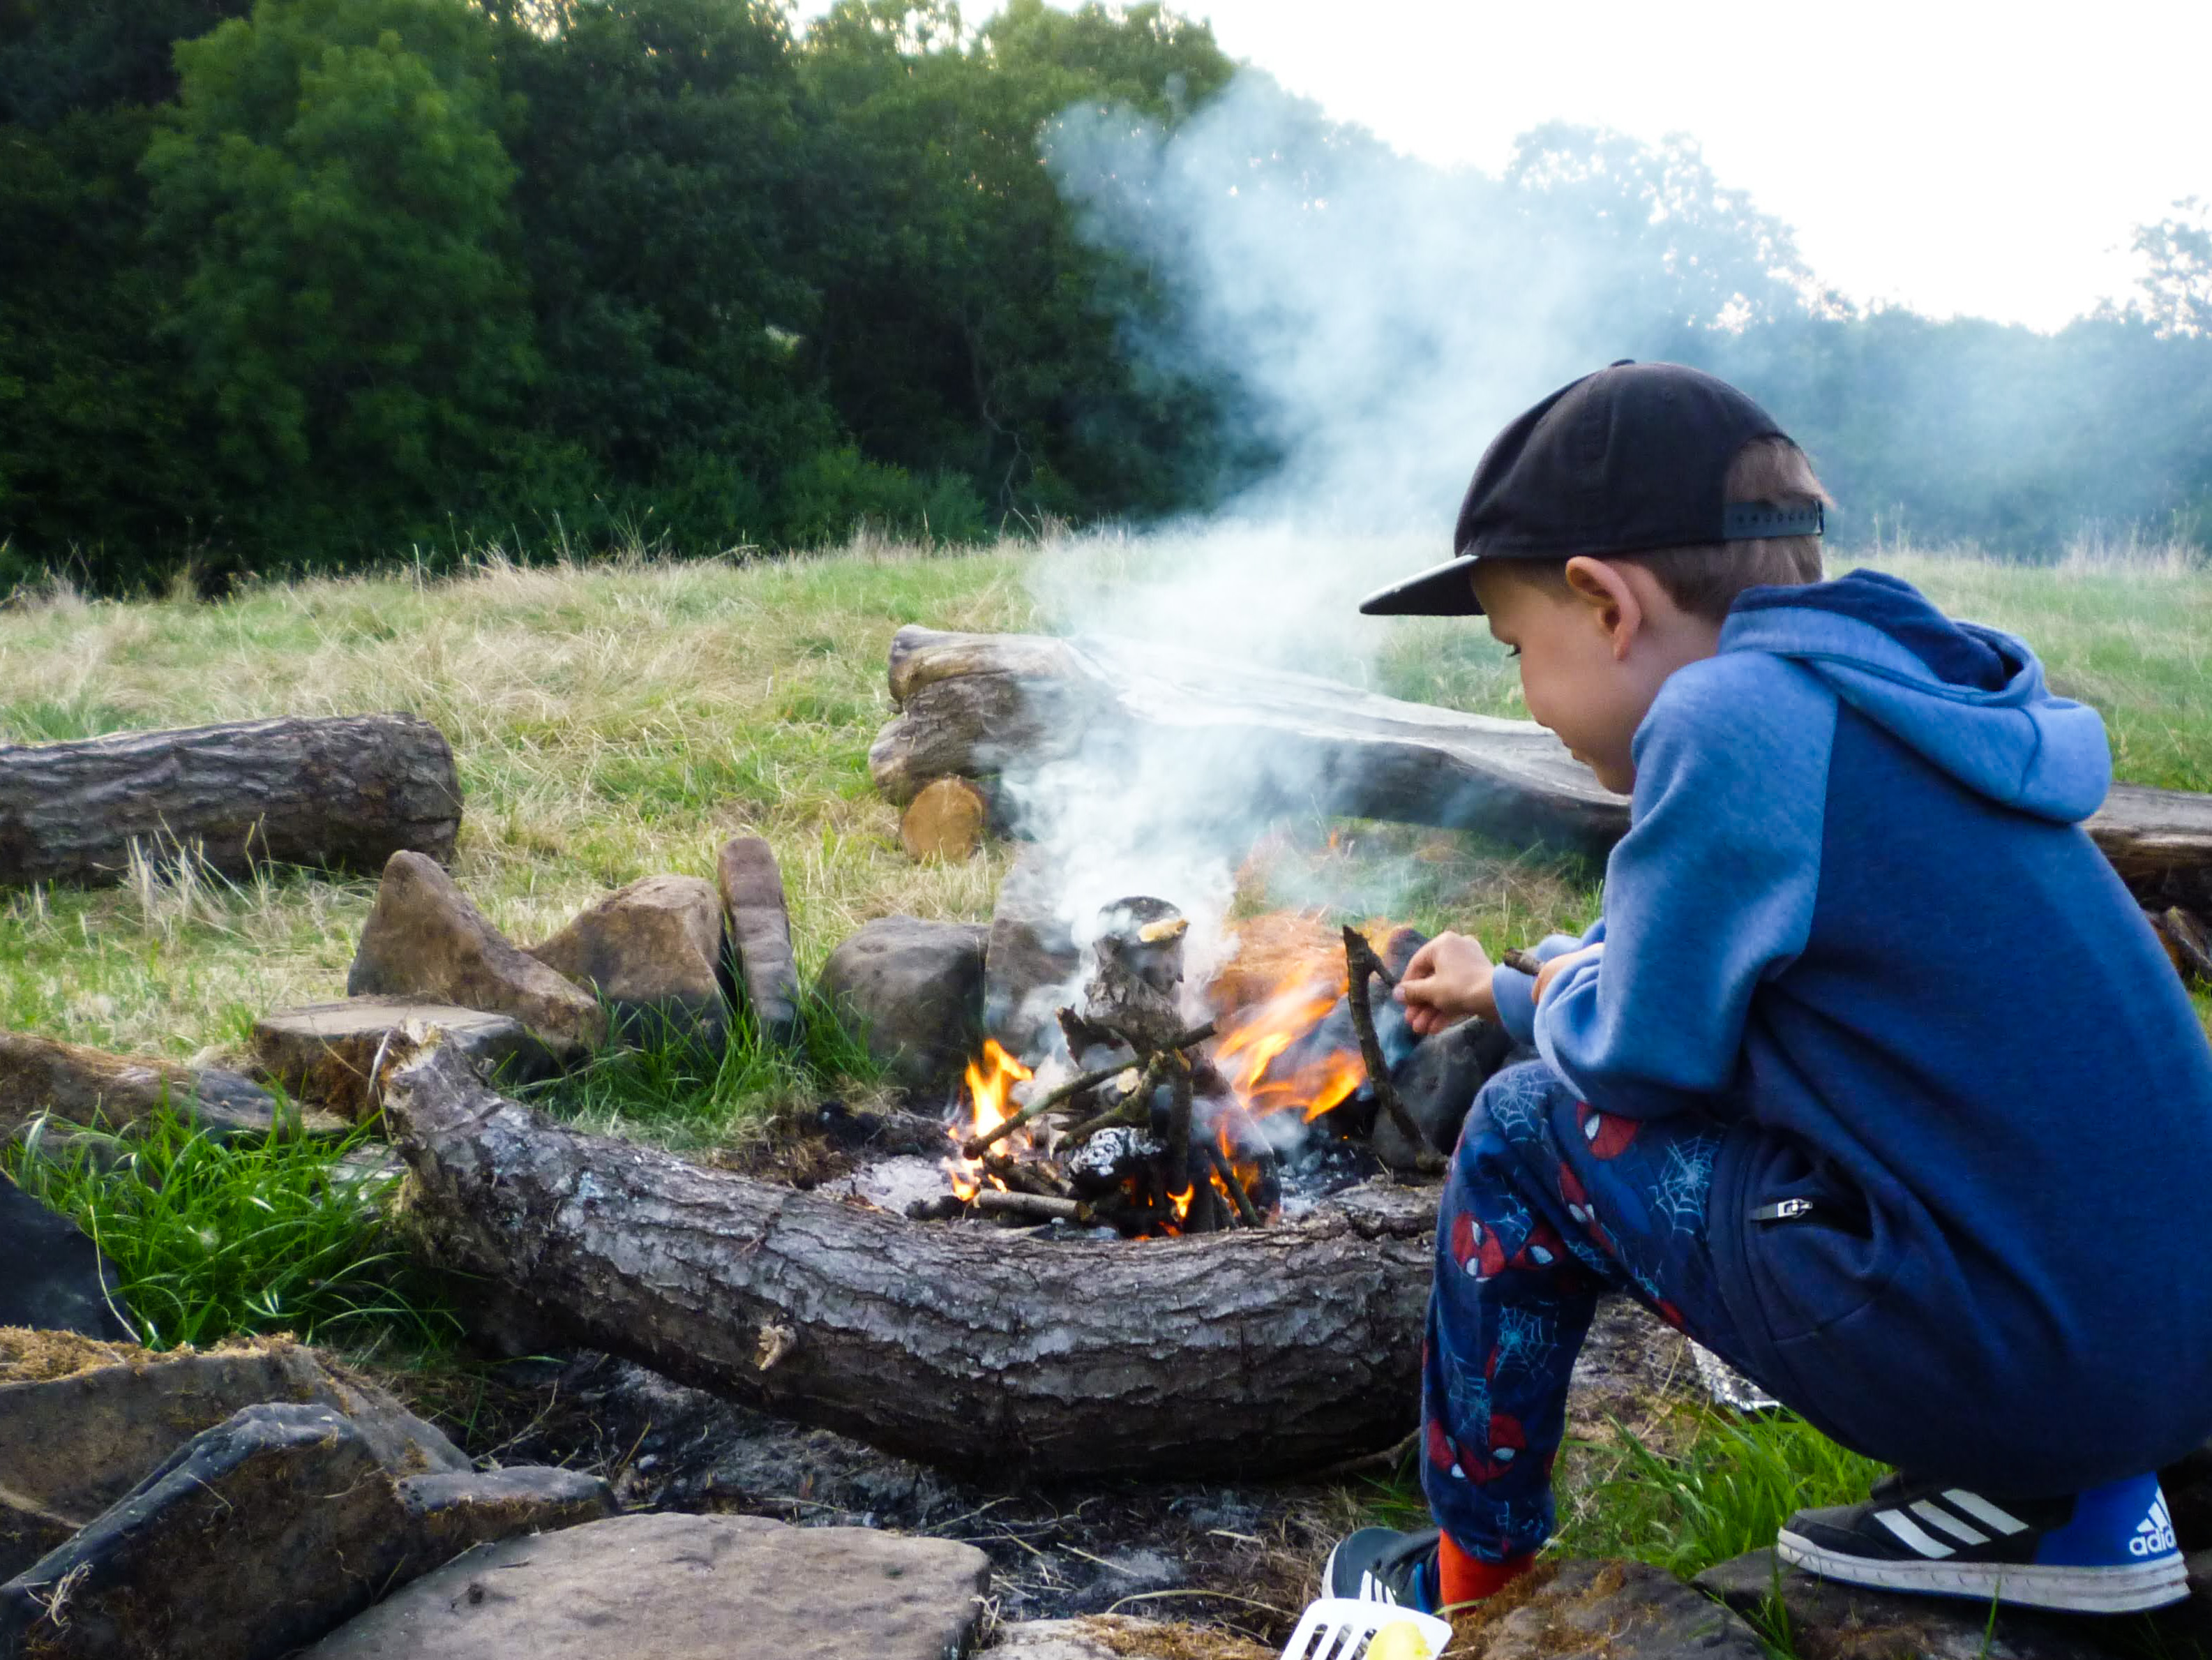 Little boy helping to build a fire